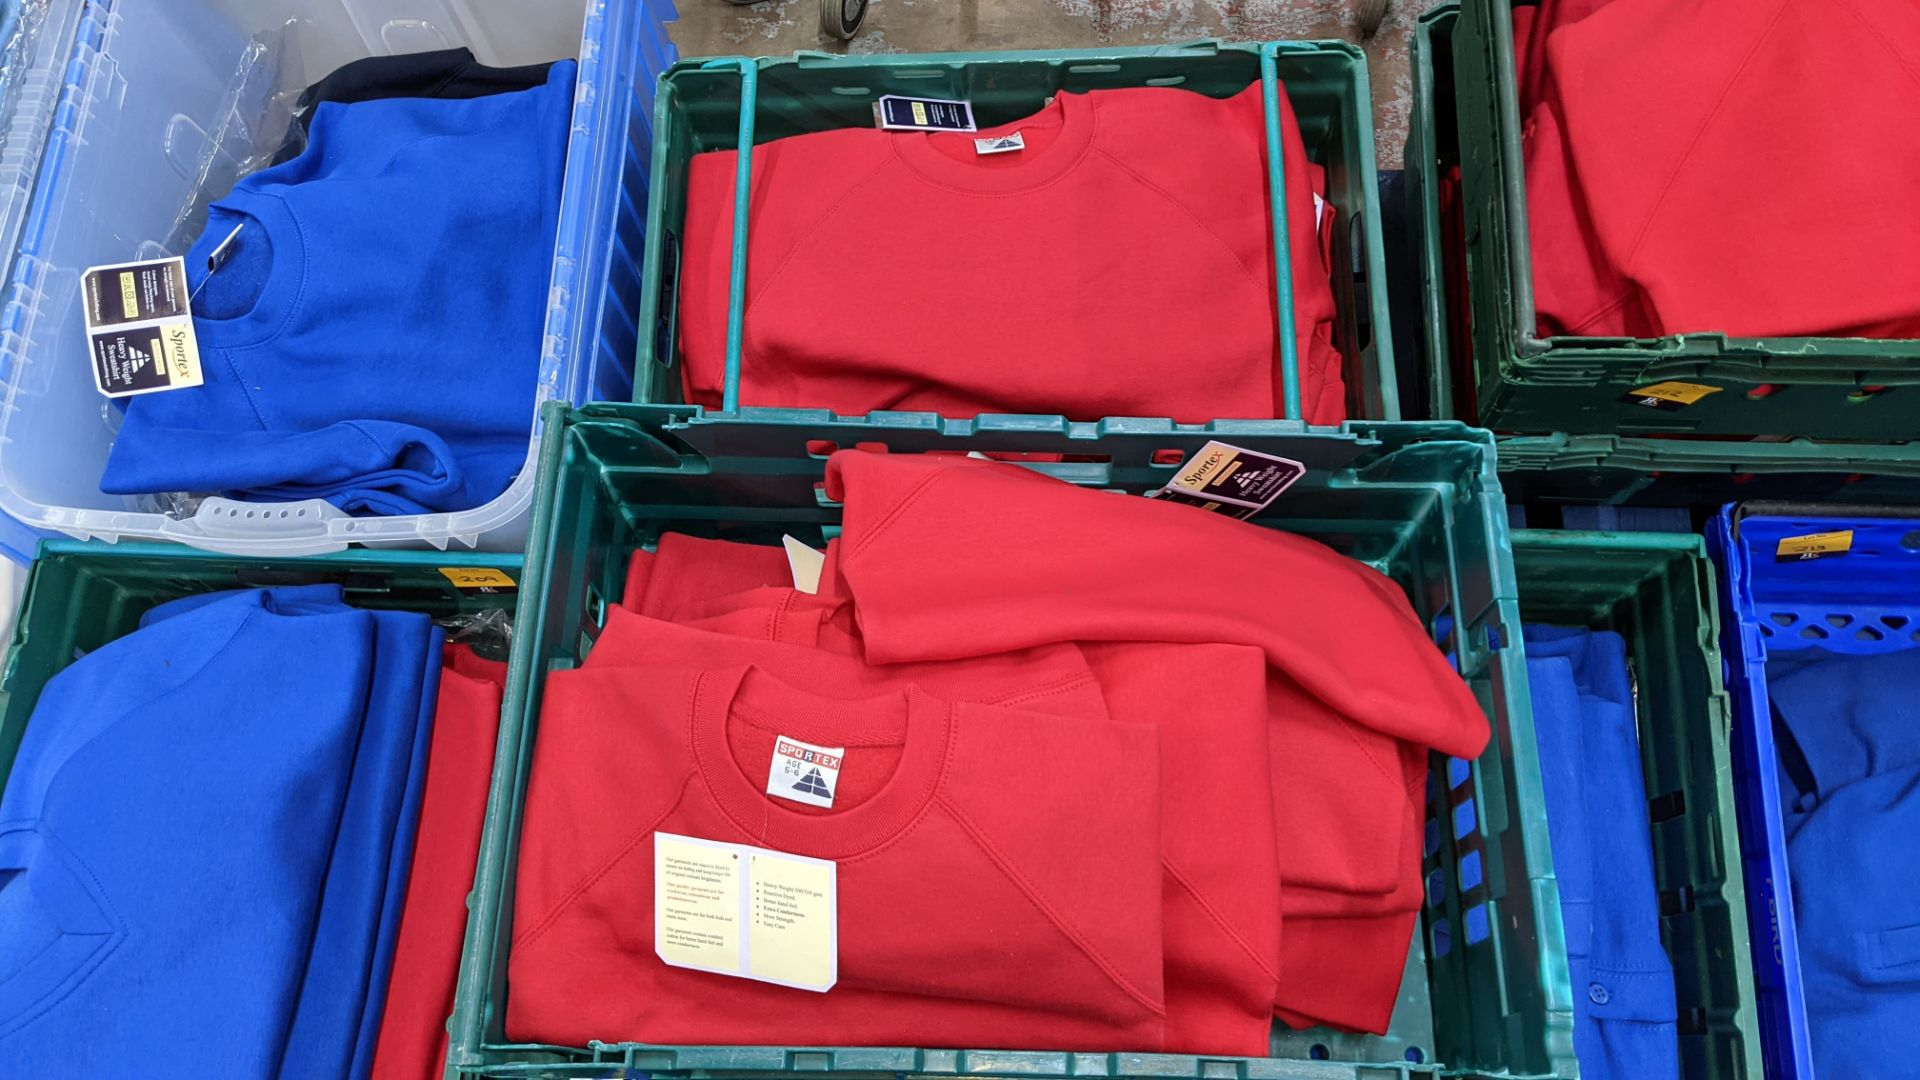 Approx 25 off Sportex children's assorted sweatshirts - the contents of 2 crates. NB crates exclude - Image 2 of 4